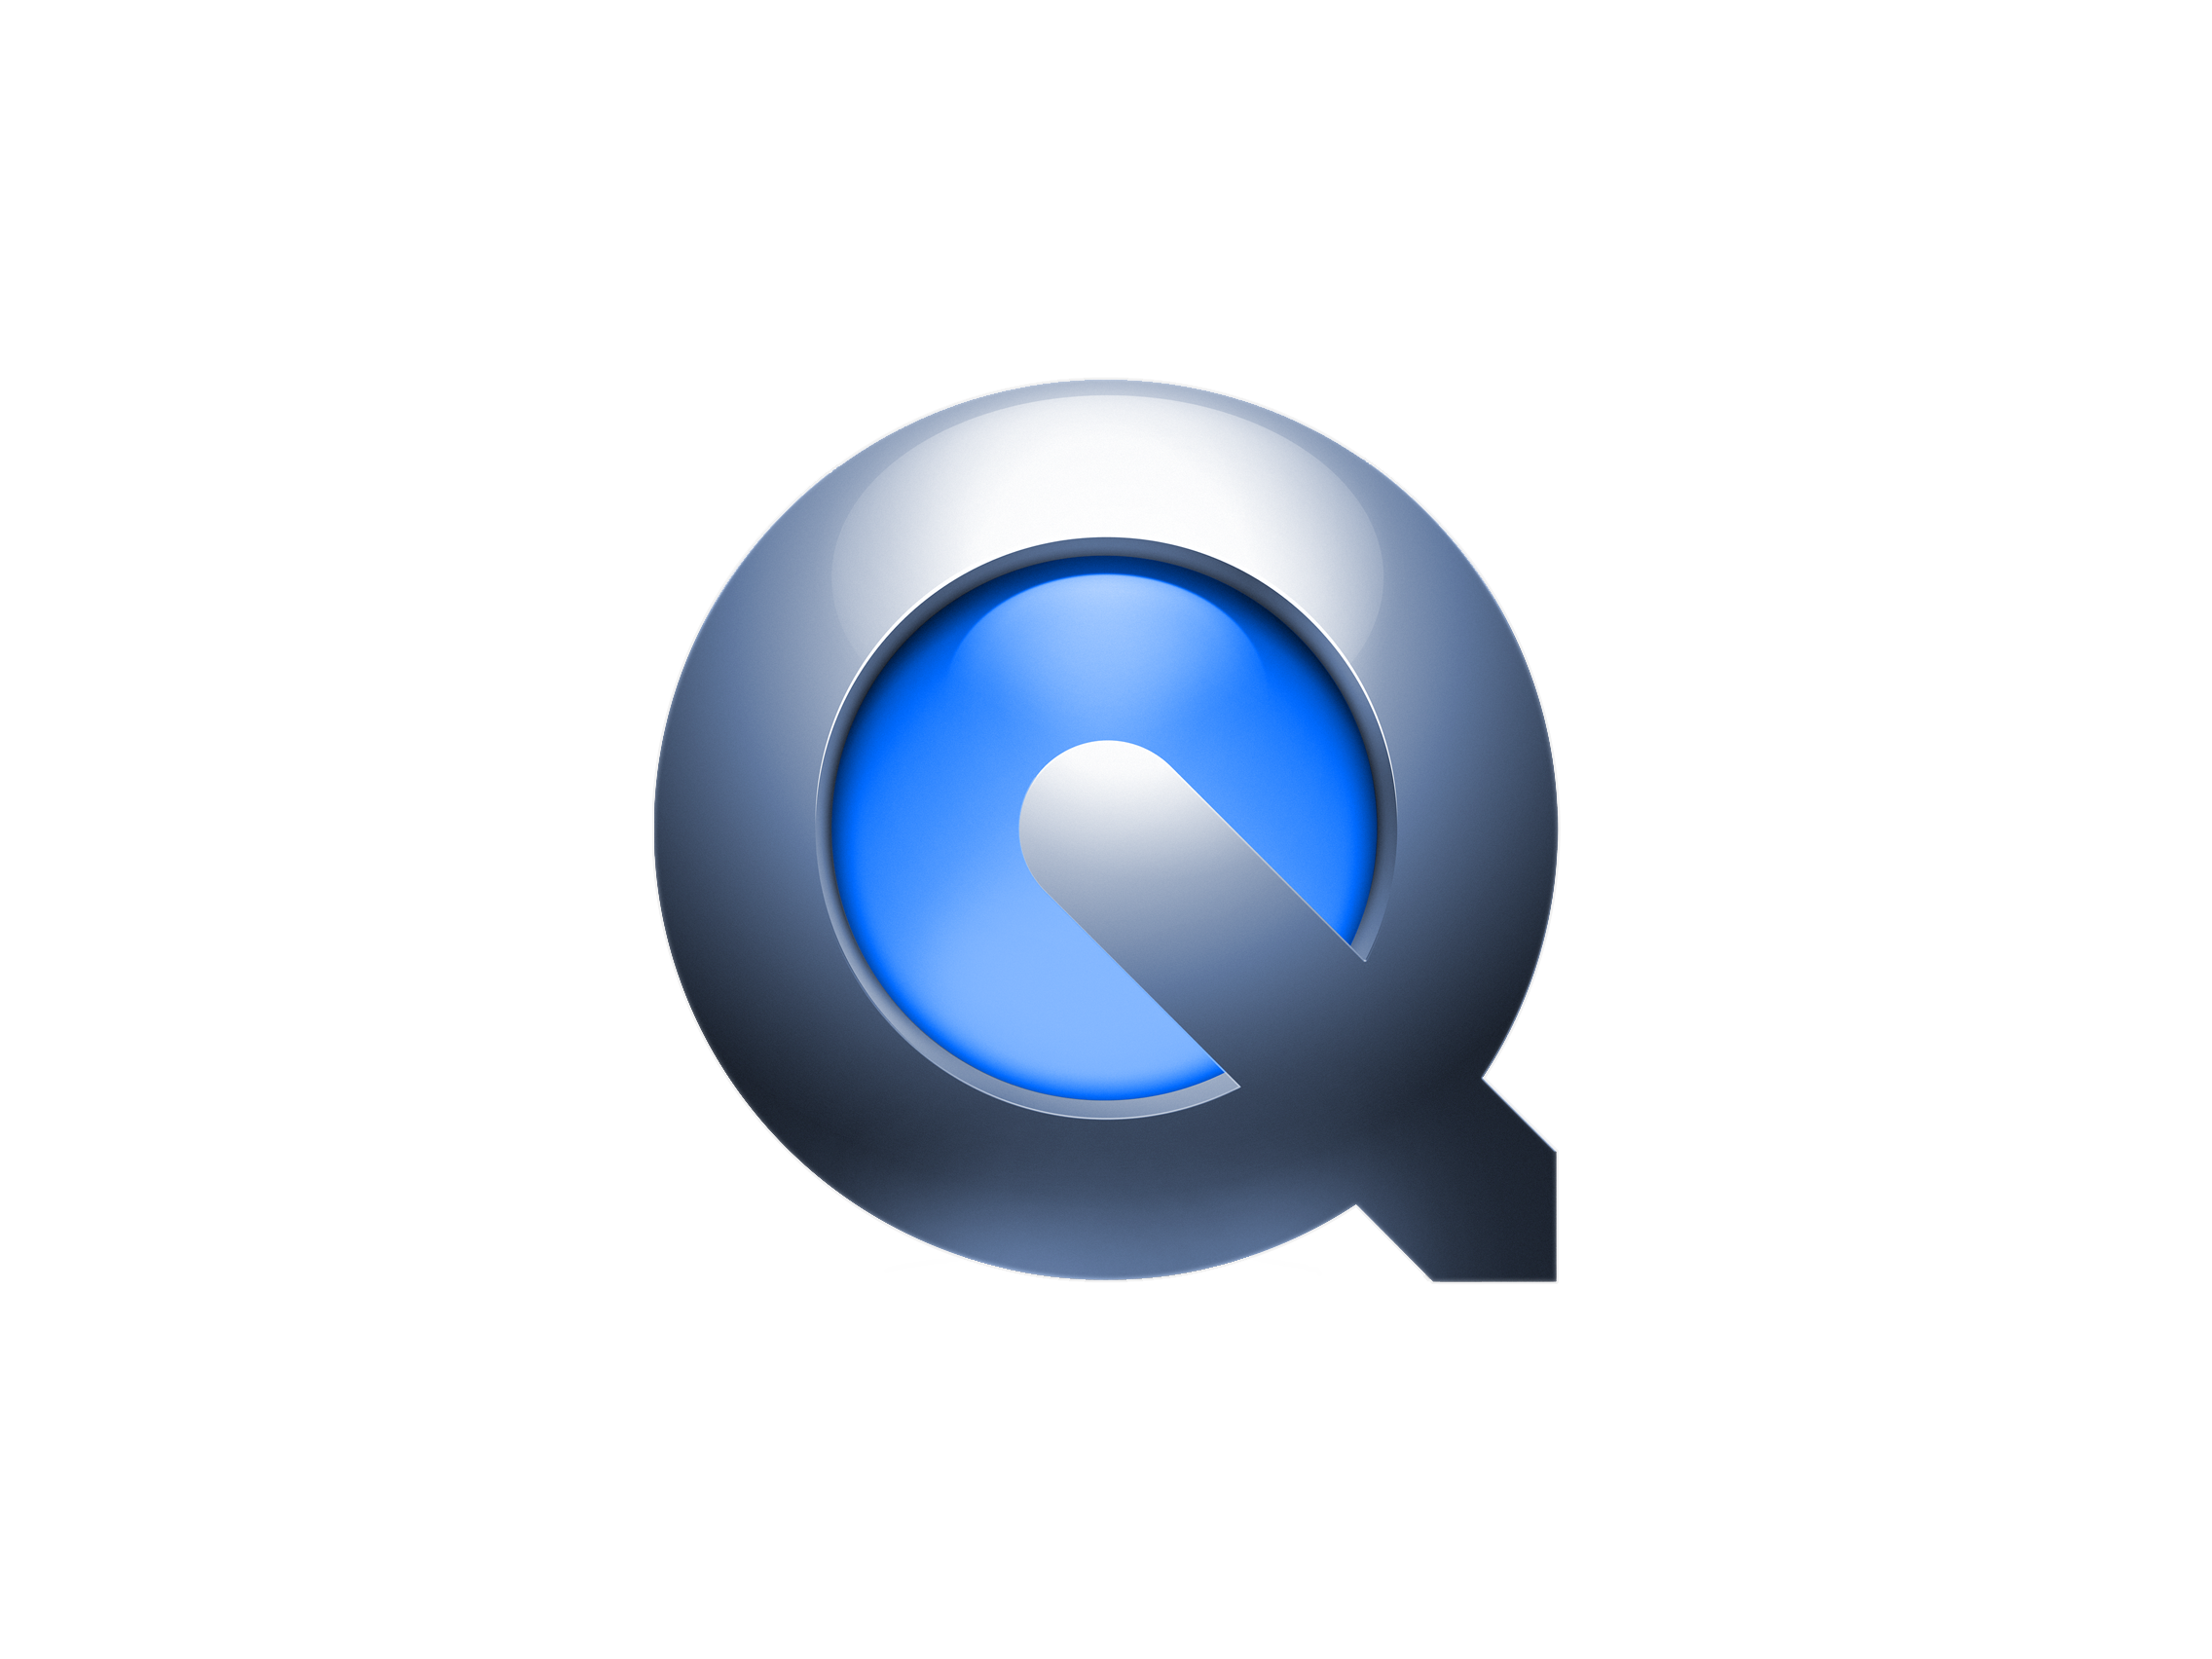 Heres why homeland security wants you to uninstall quicktime for heres why homeland security wants you to uninstall quicktime for windows inverse buycottarizona